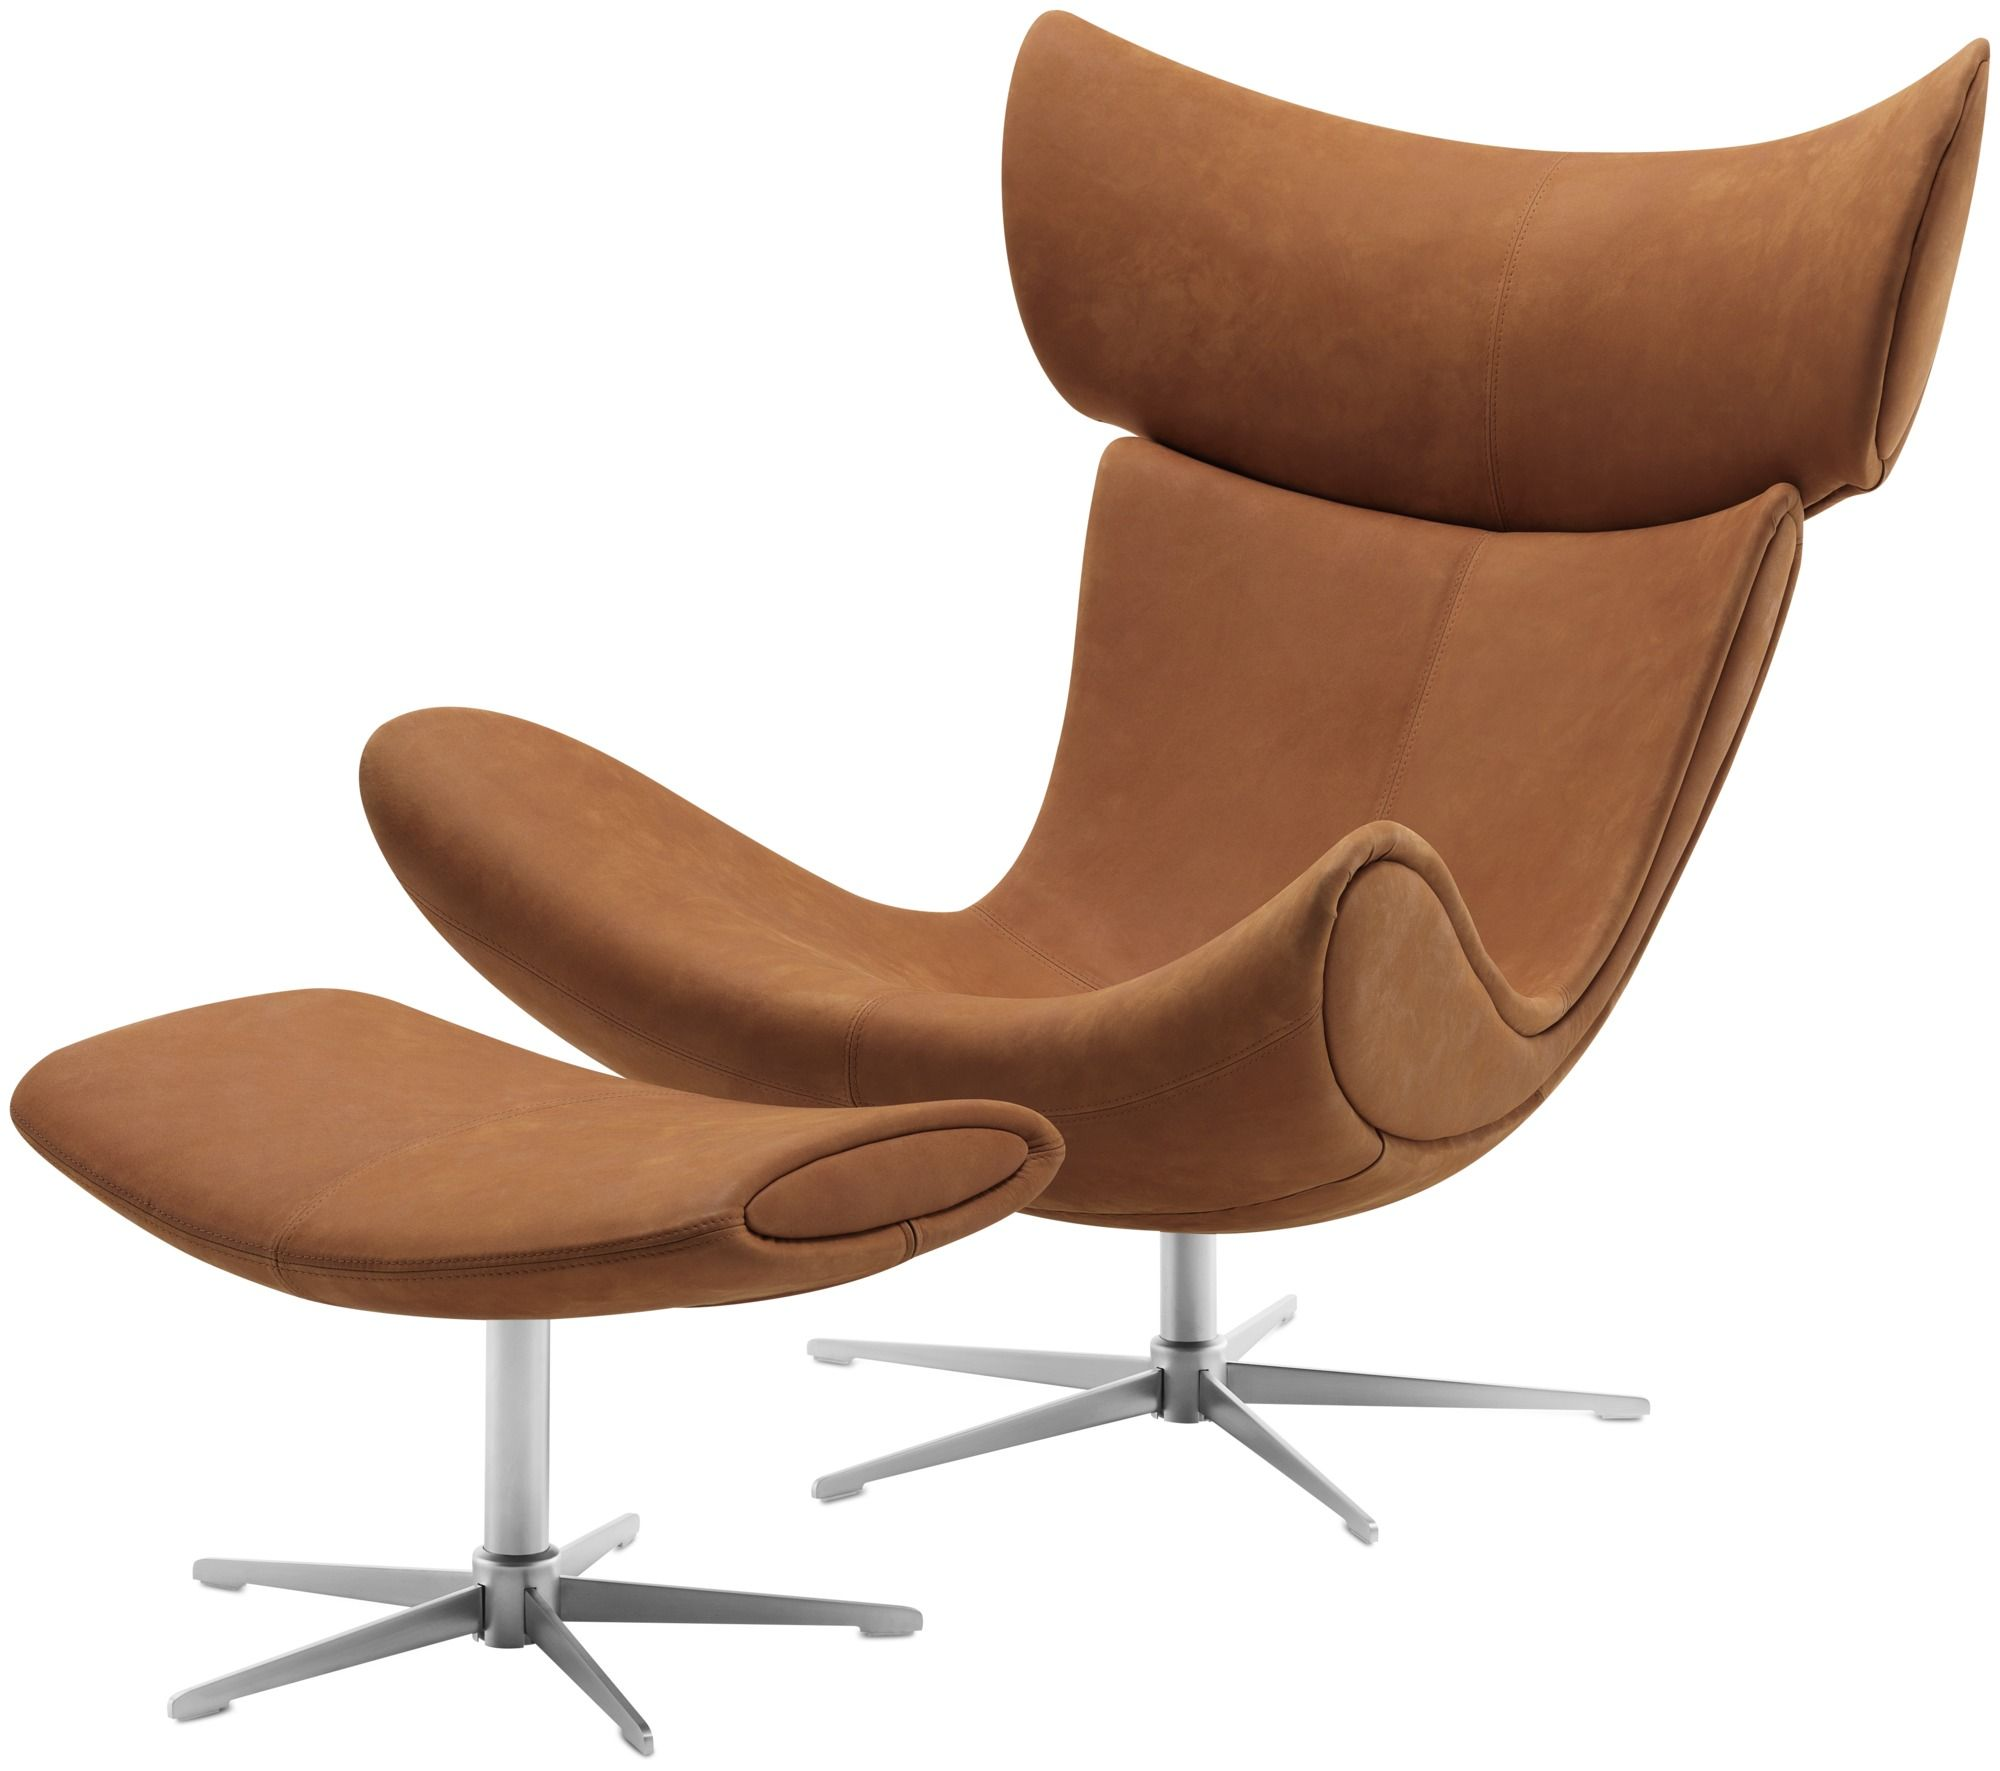 Boconcept Design Sale Great Offers On Danish Design Wohnzimmer Sessel Moderne Sessel Sessel